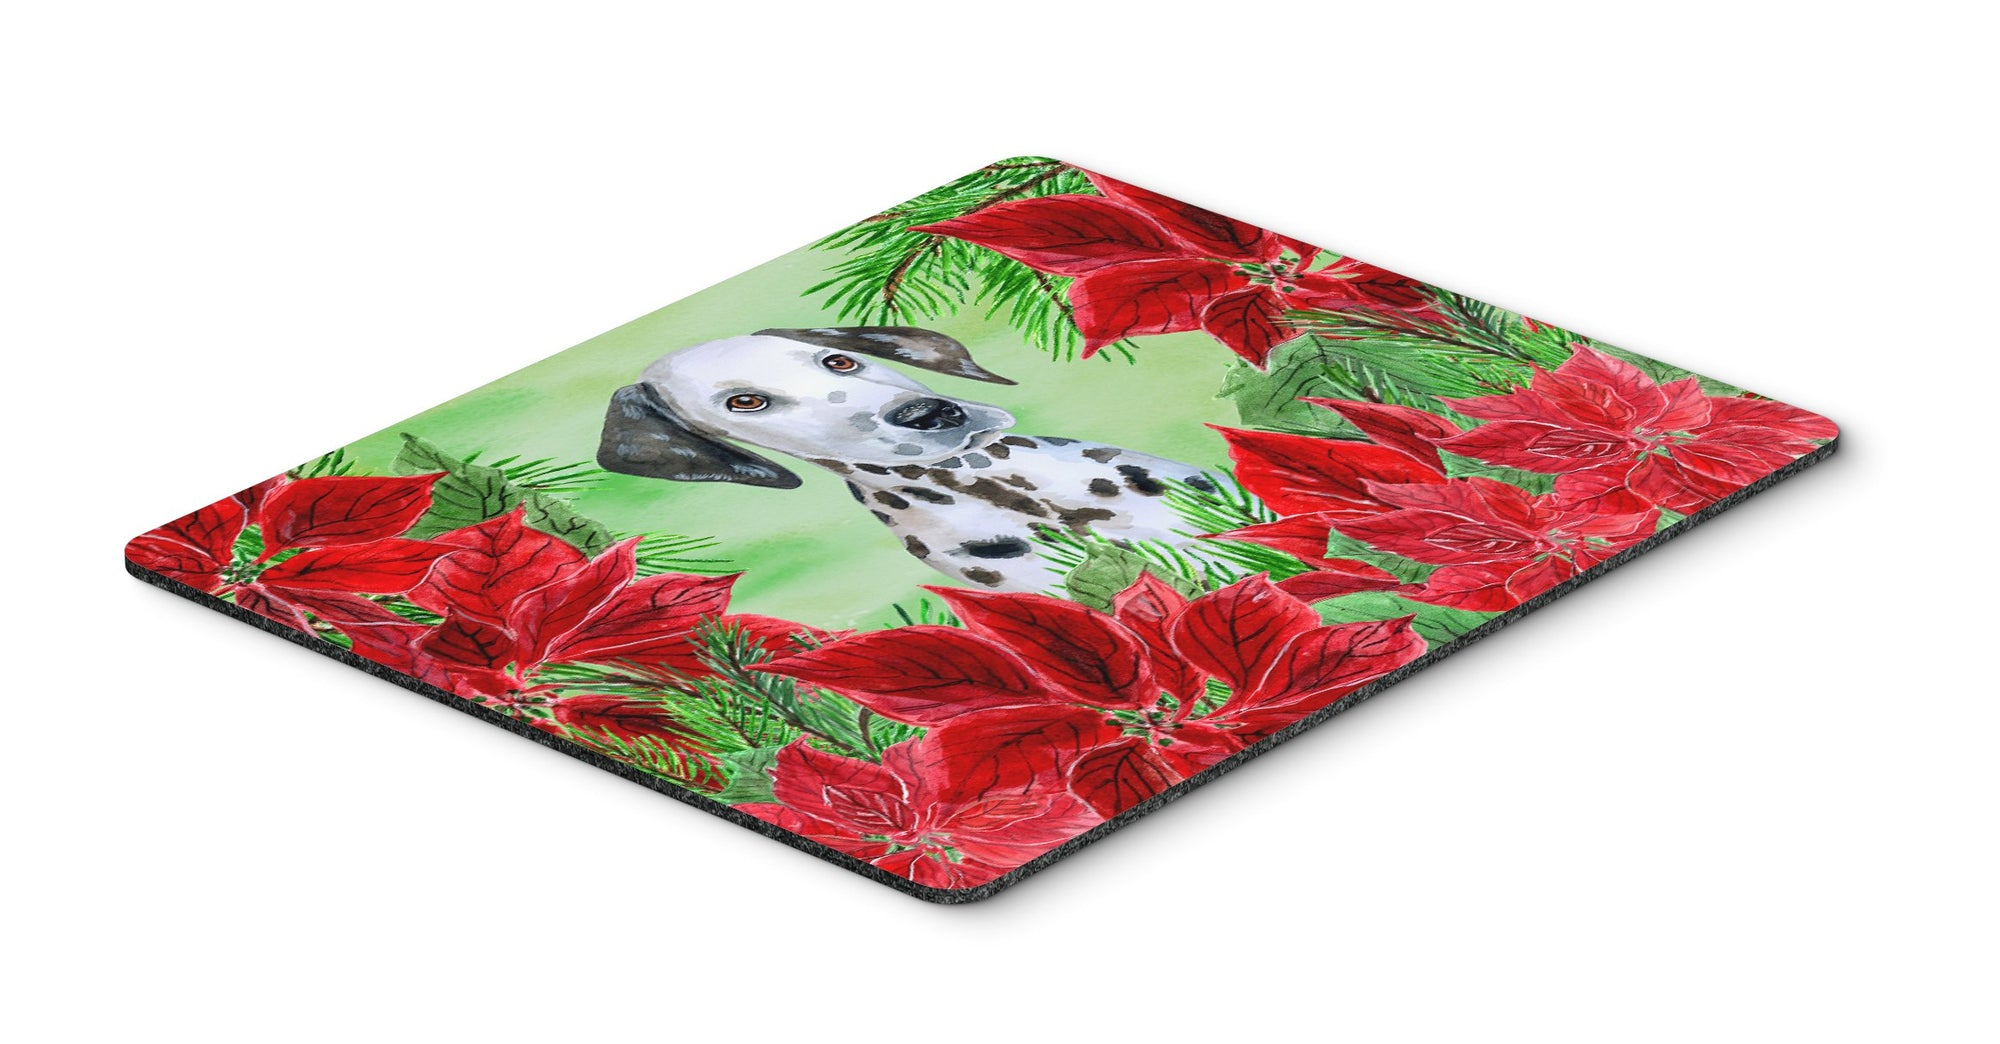 Dalmatian Puppy Poinsettas Mouse Pad, Hot Pad or Trivet CK1356MP by Caroline's Treasures